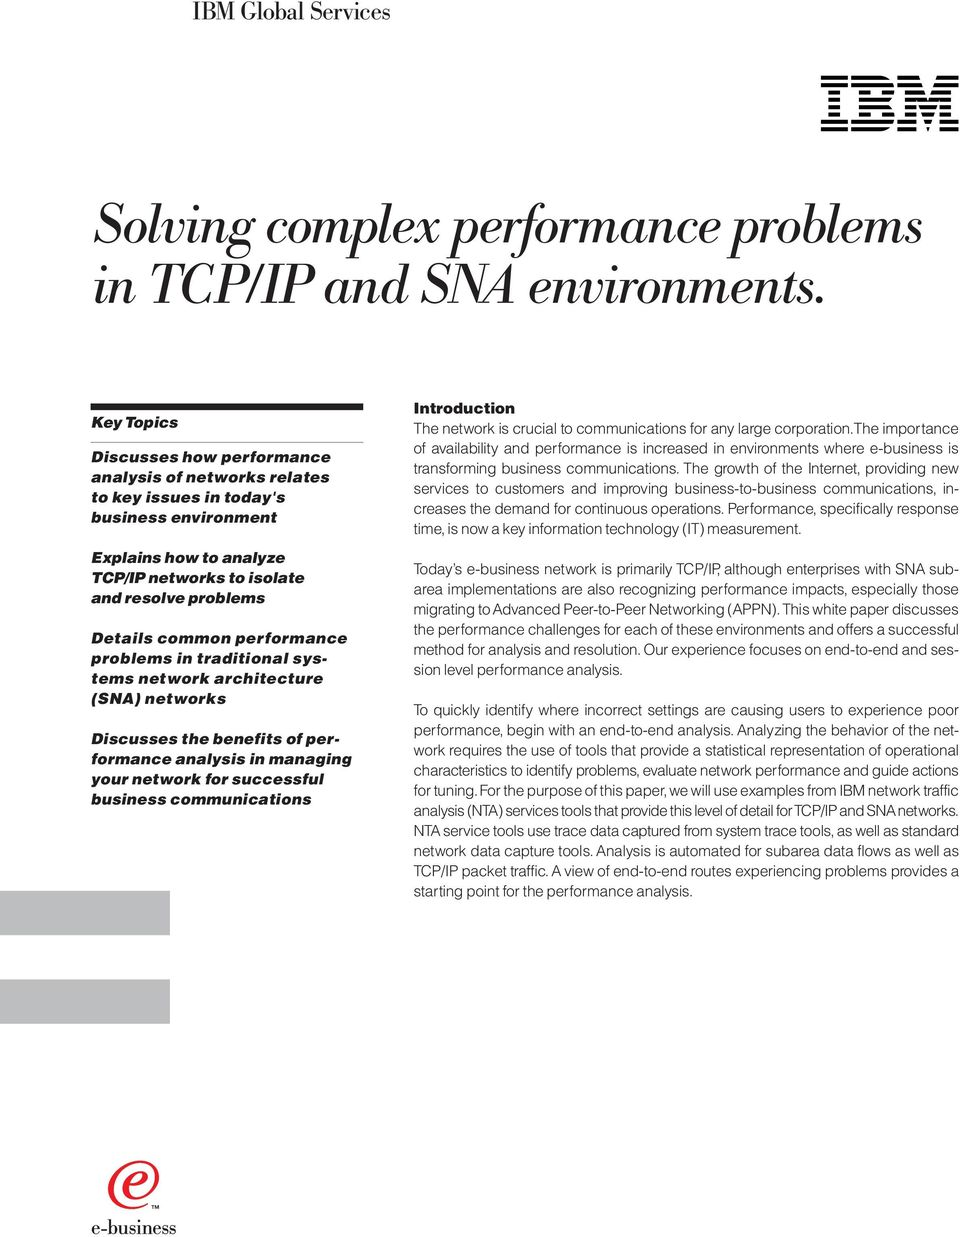 performance problems in traditional systems network architecture (SNA) networks Discusses the benefits of performance analysis in managing your network for successful business communications